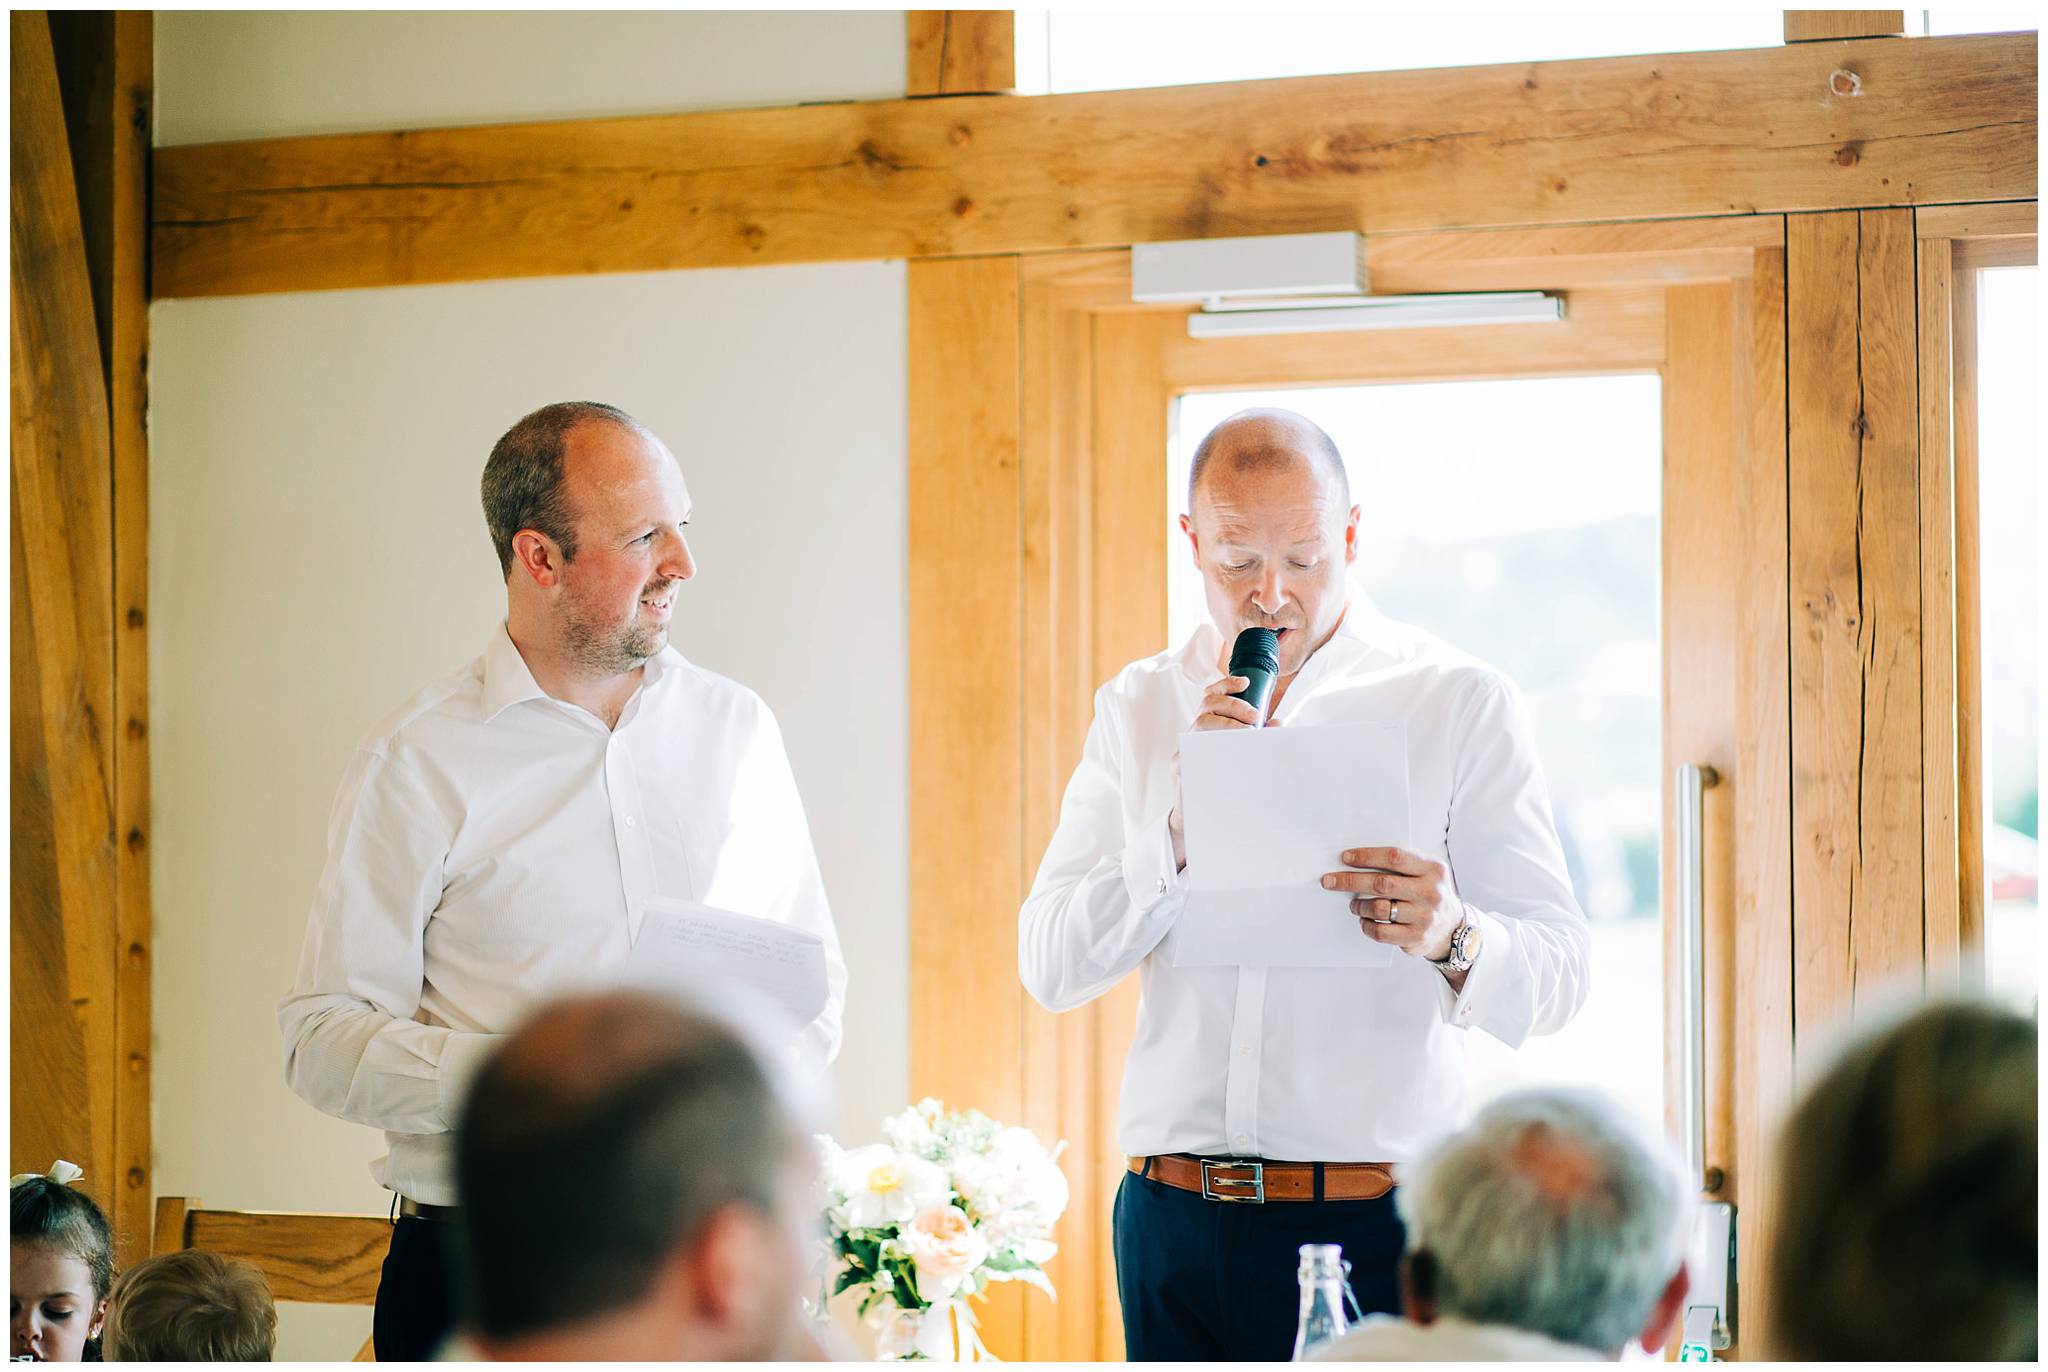 the two best men are stood up with the microphone giving their joint best man speech